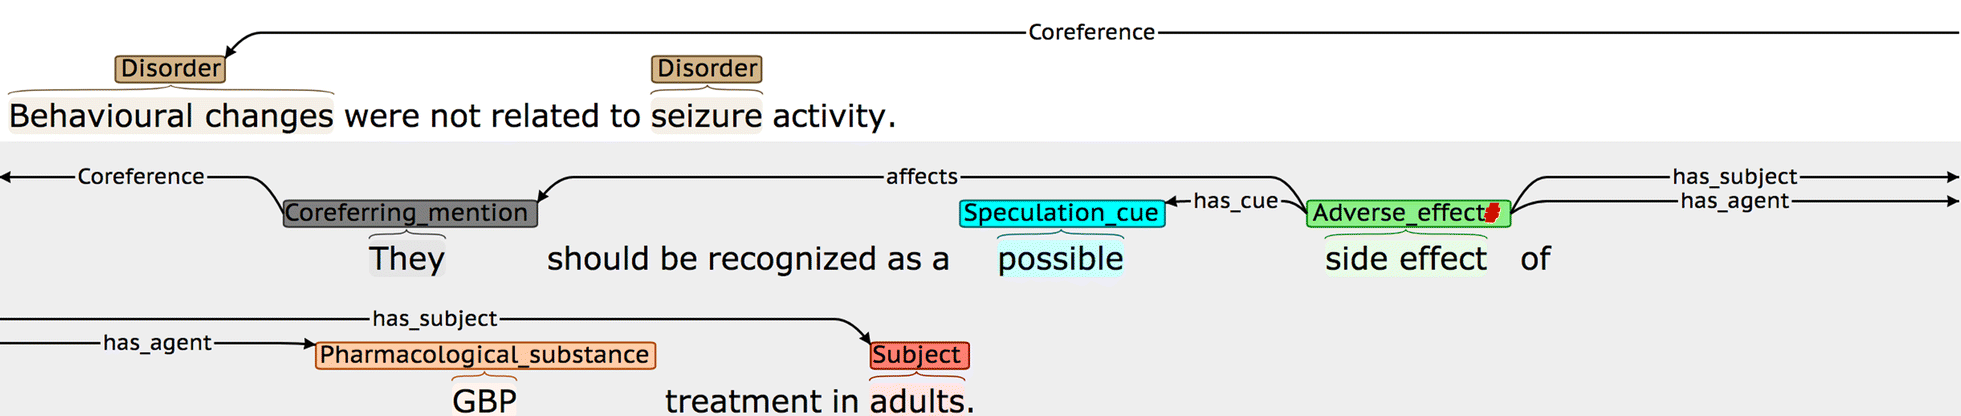 Annotation and detection of drug effects in text for